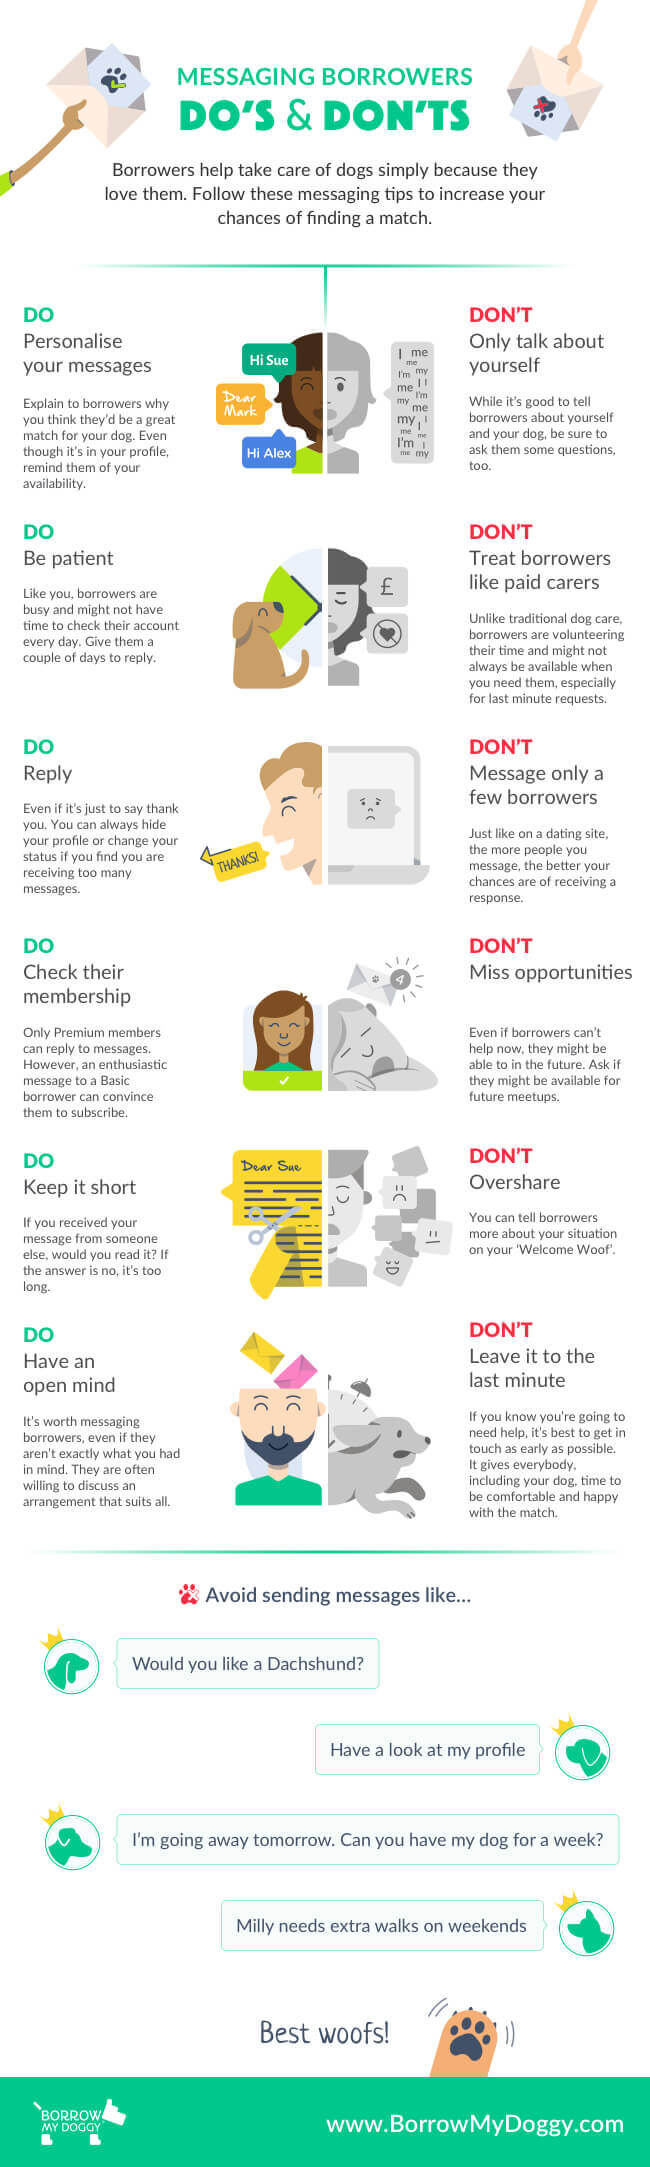 Messaging Borrowers Do's and Don'ts